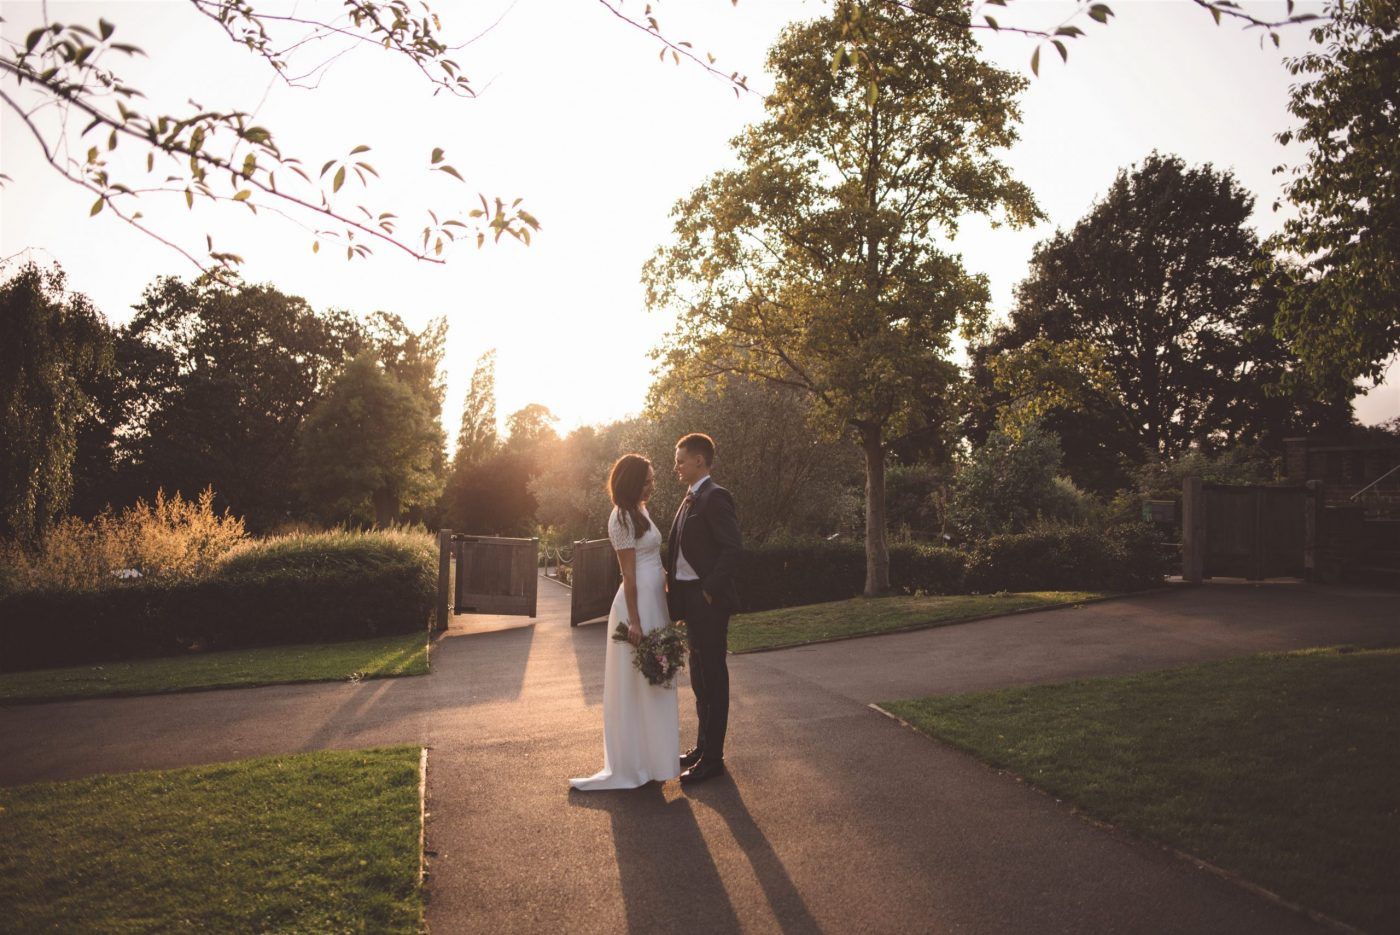 Golden hour wedding photography at Horniman Museum